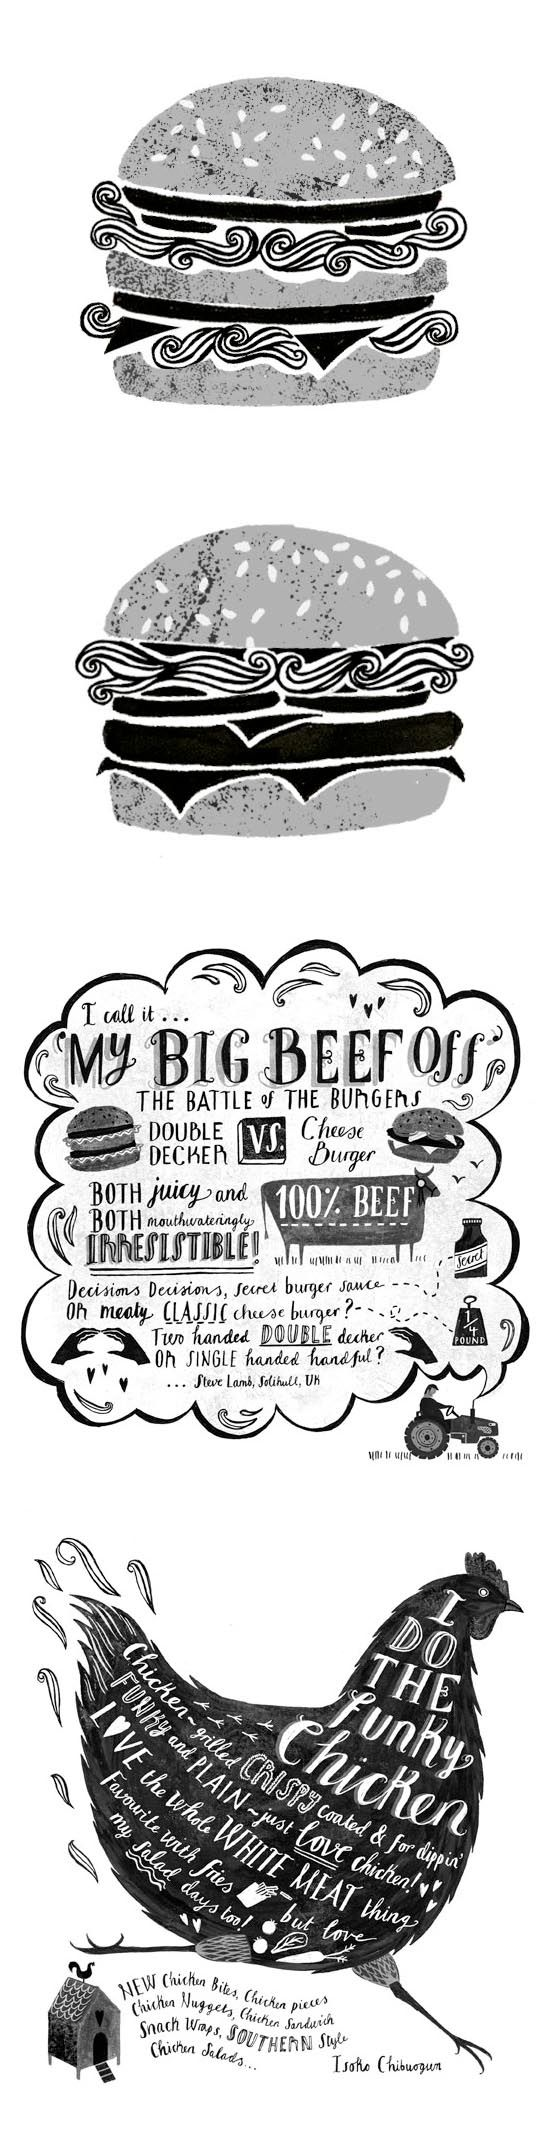 2 all beef patties-- special type and a chicken too! Sara Mulvanny | so cute!